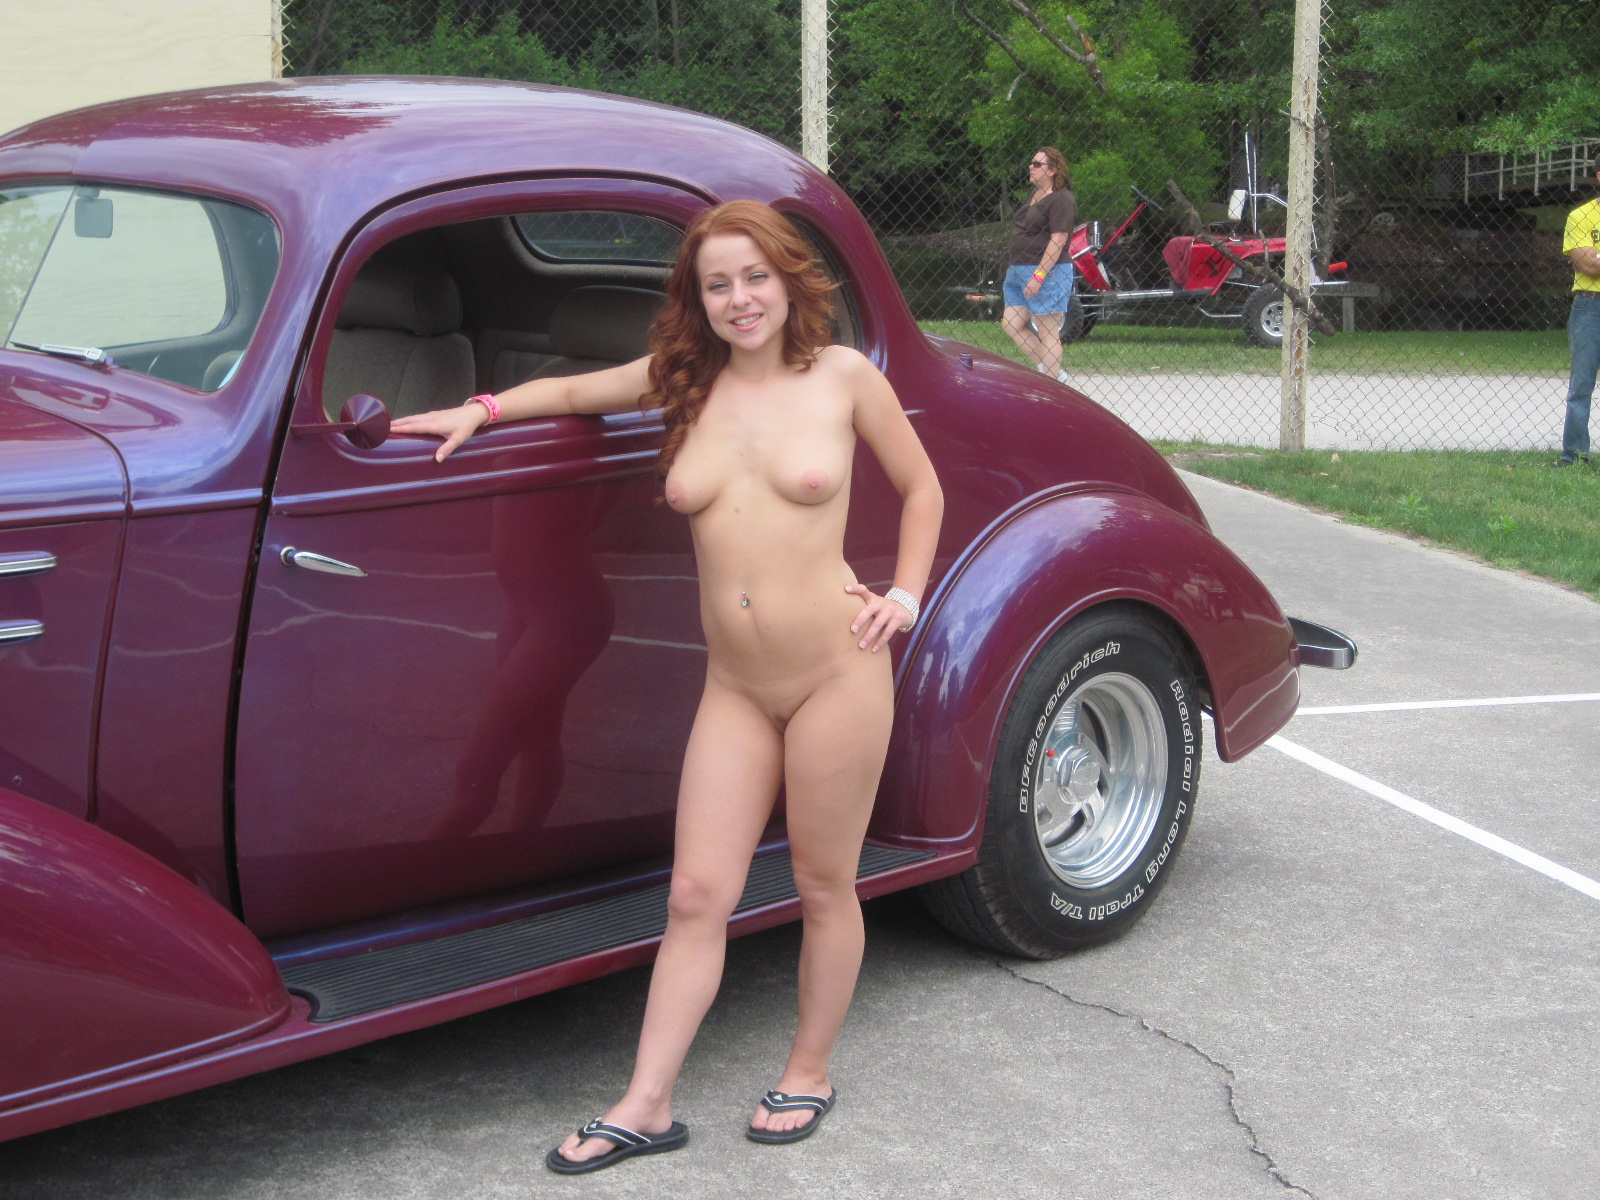 Cars hot girls rod topless with